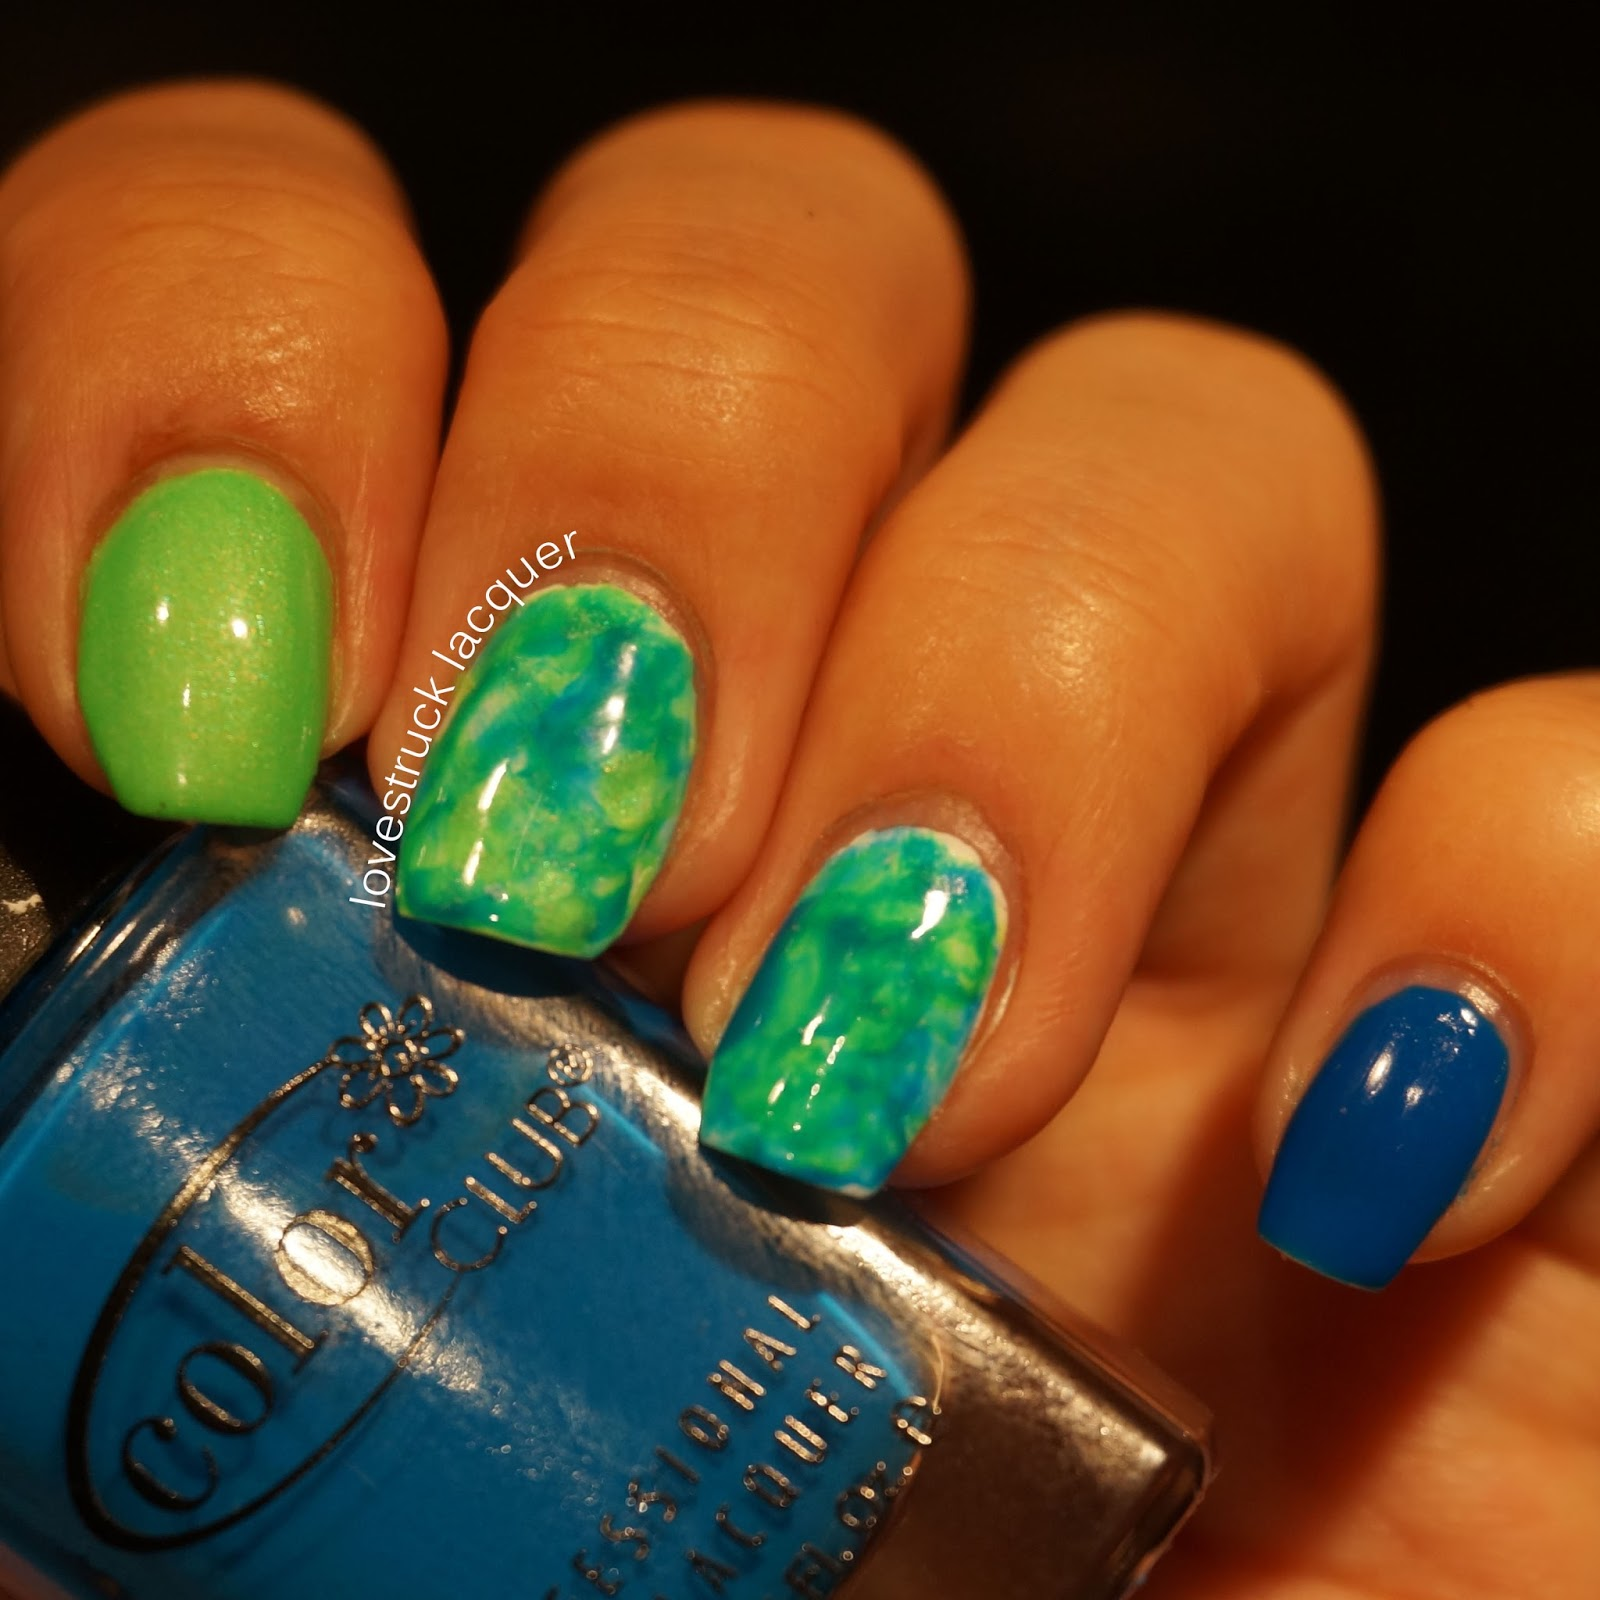 Lovestruck Lacquer: Neon green and blue watercolor nails